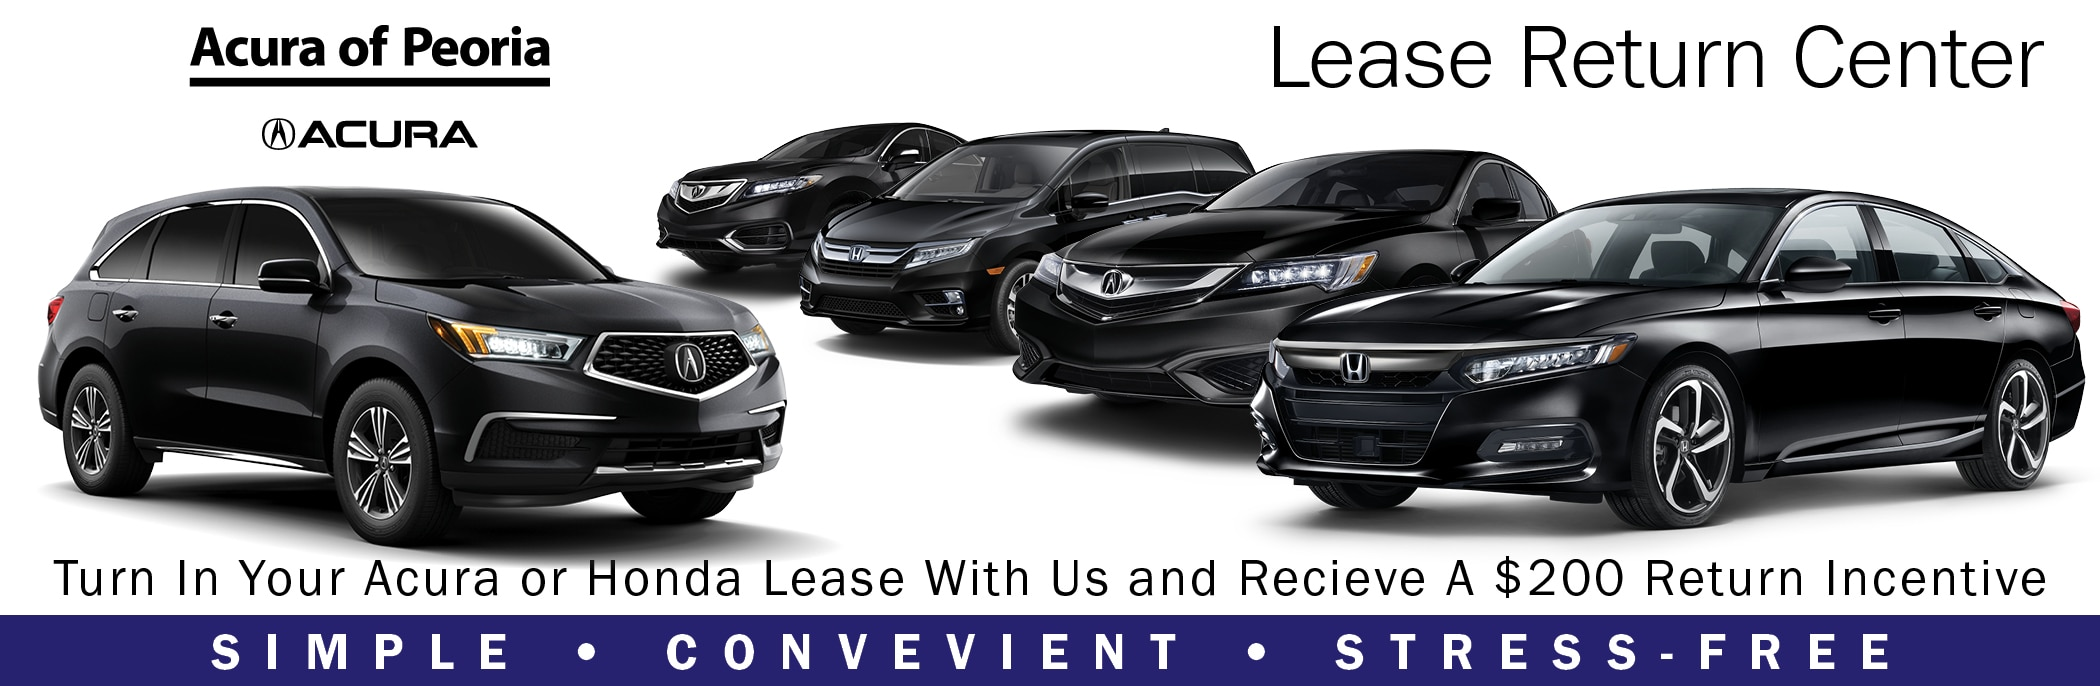 Is The Lease On Your Acura Or Honda Coming To An End Soon? Have You  Considered Your Options? Itu0027s Simple. Let Acura Of Peoriau0027s Lease Return  Team Walk You ...